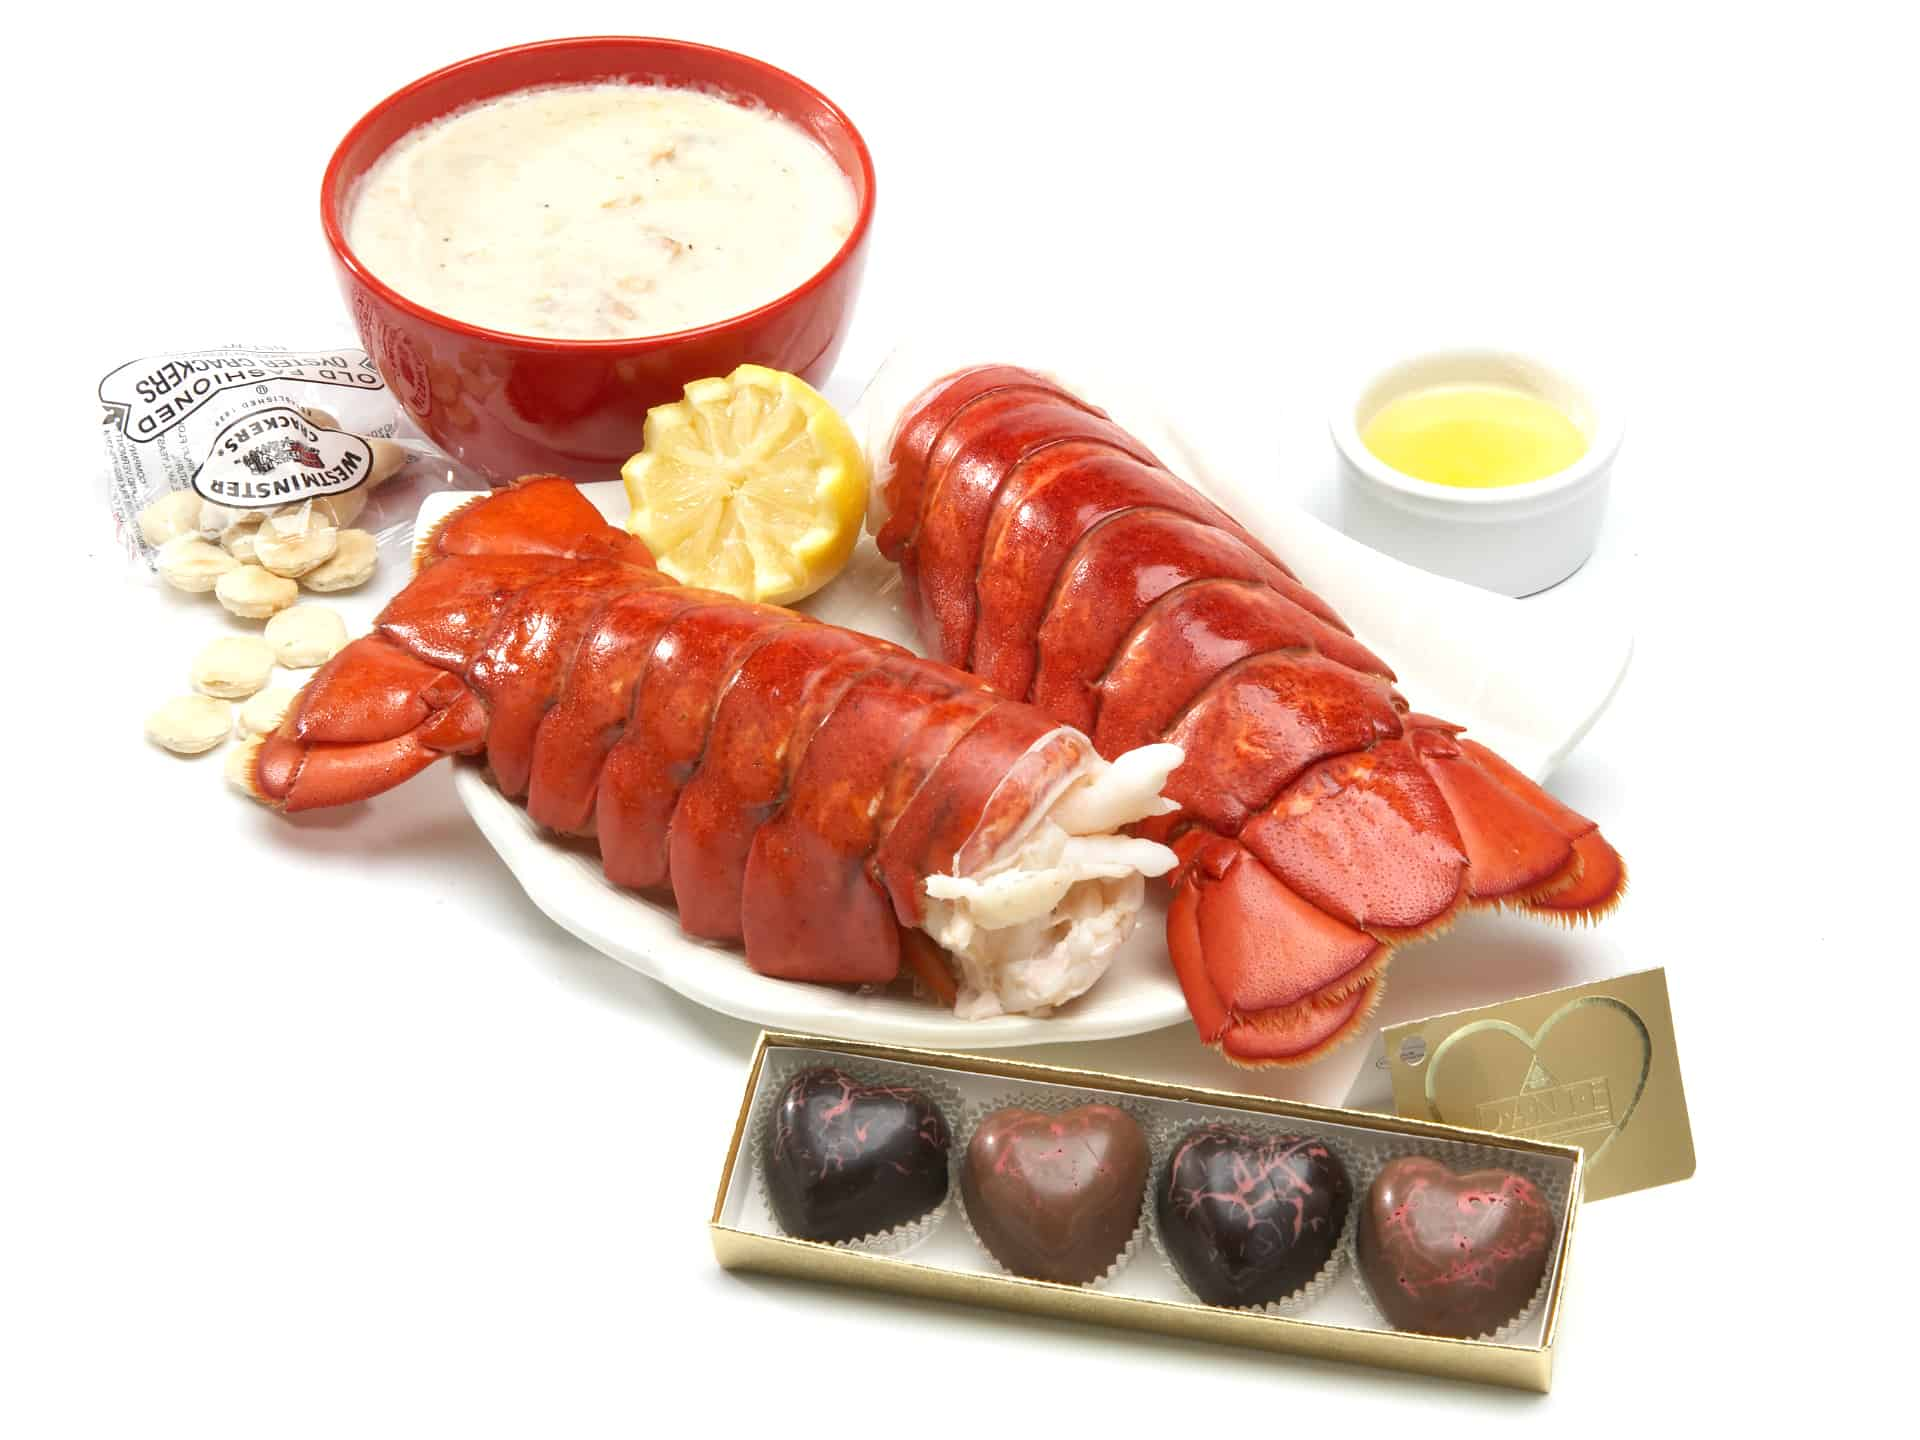 Lobster Tail Dinner For Two For Your Seafood Lover